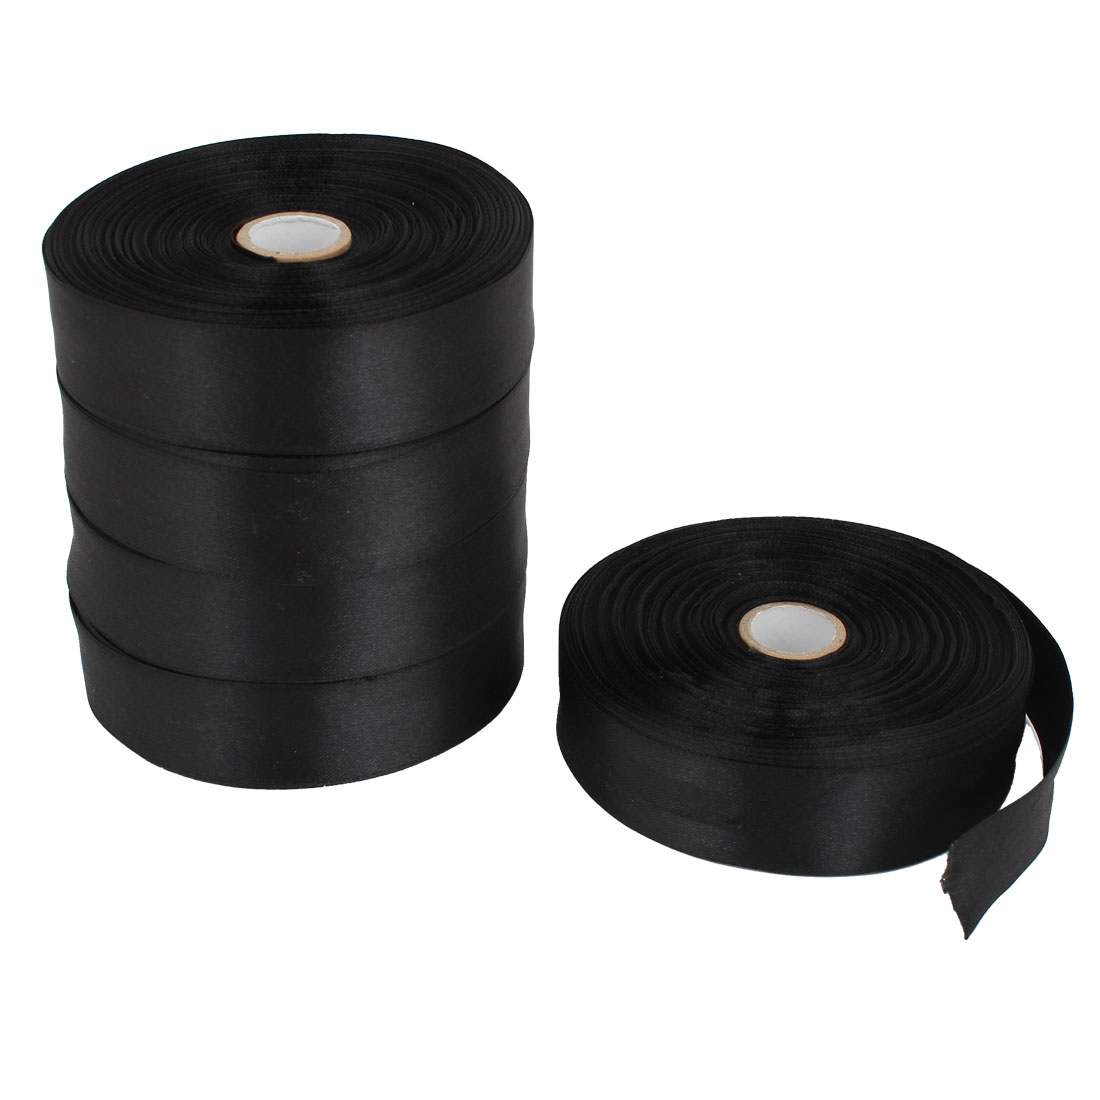 5 Pcs Black 2.5cm Width DIY Craft Wedding Party Sewing Decor Ribbon Roll Tape 250 Yard 229M